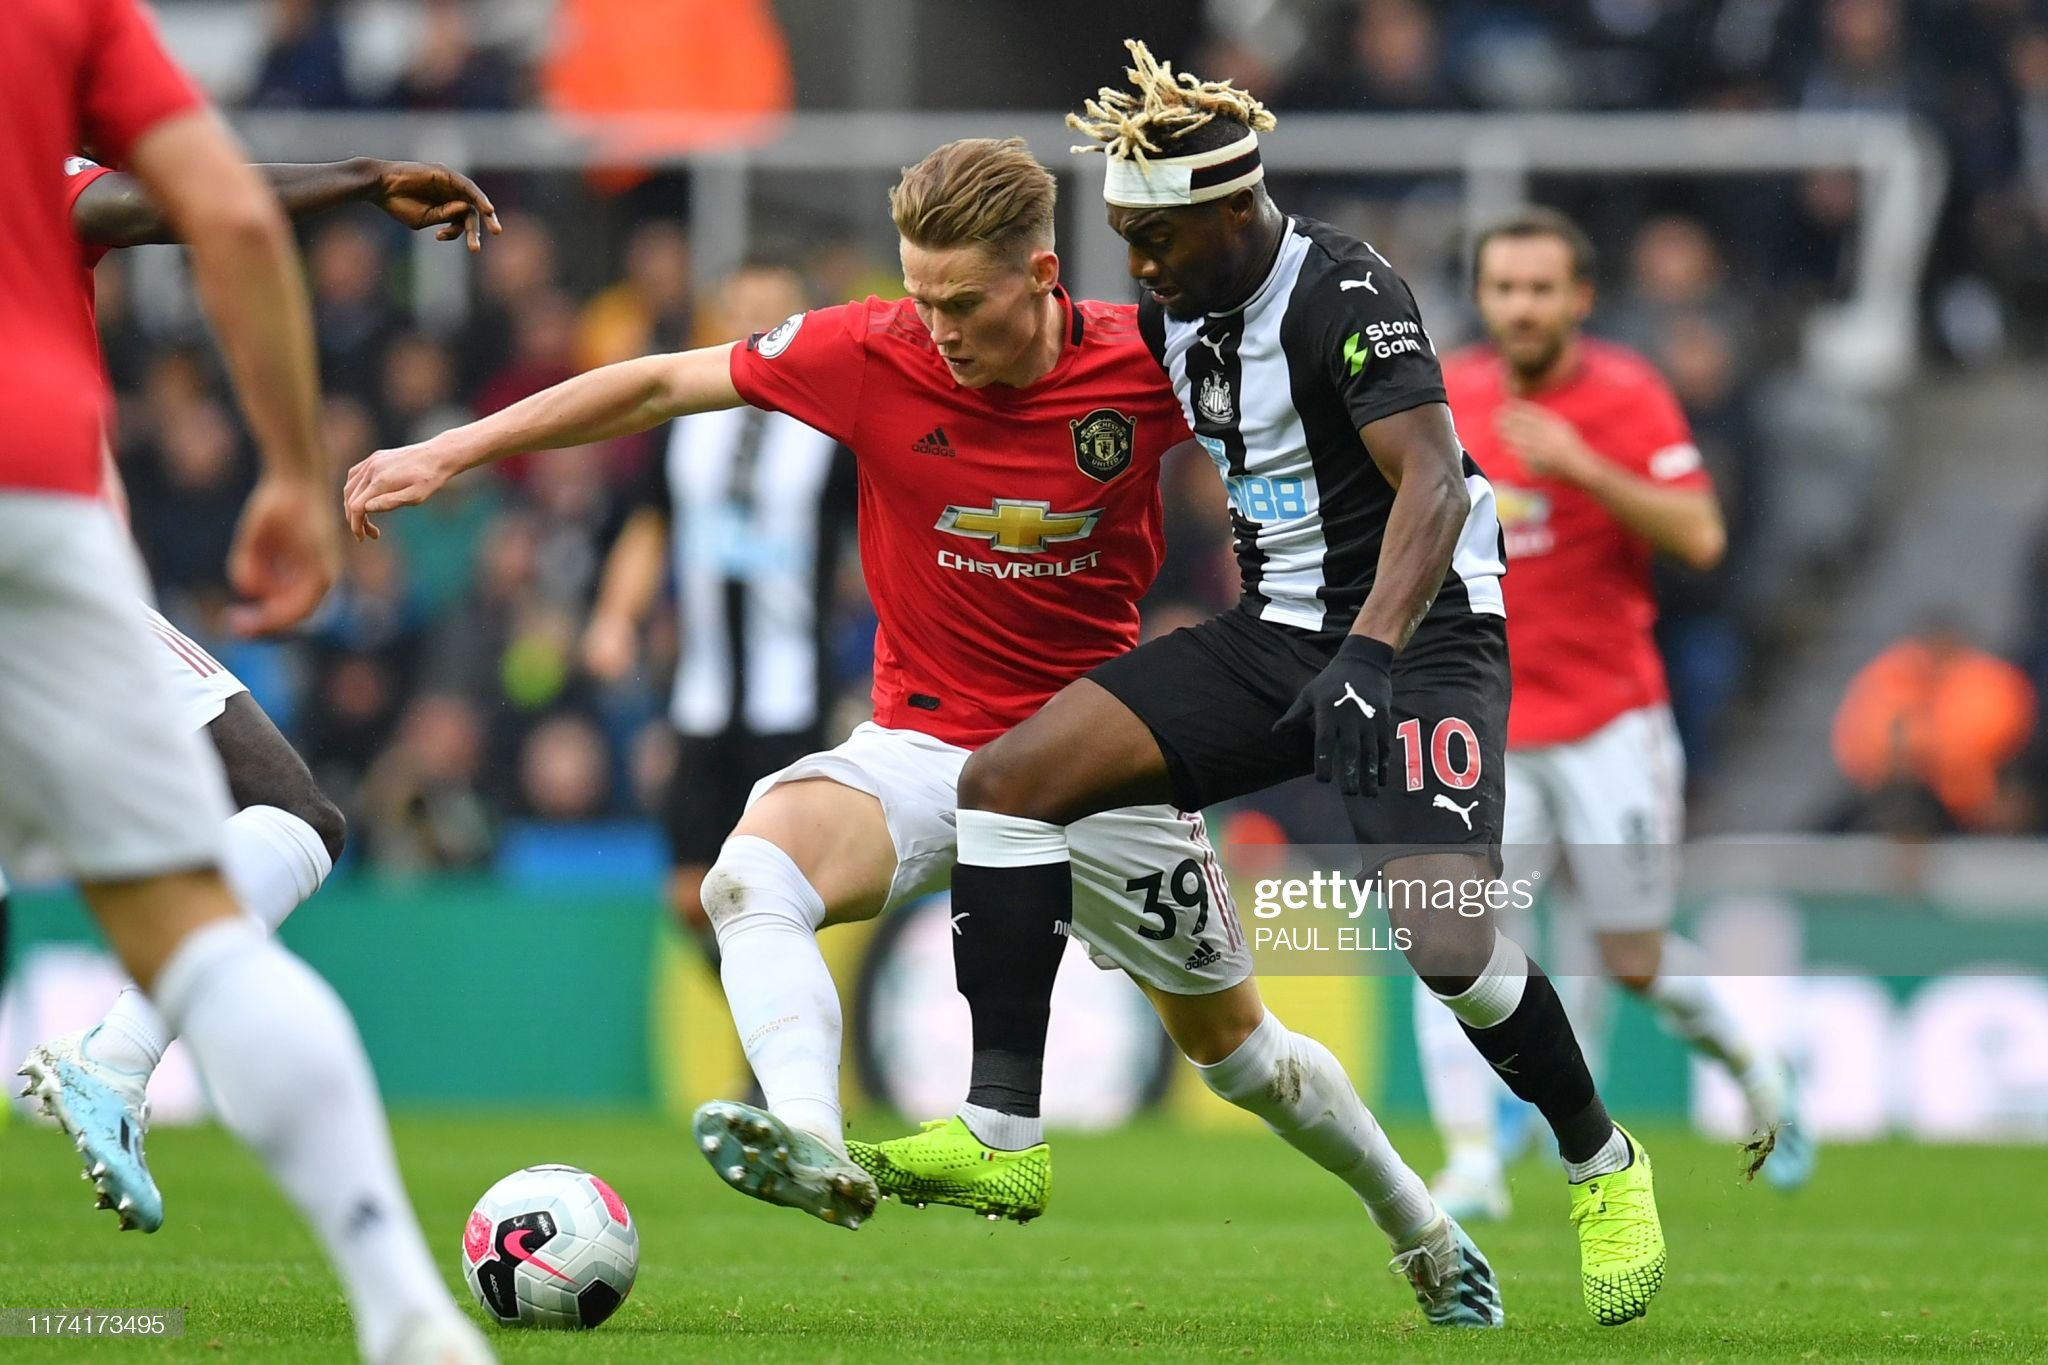 Newcastle vs Manchester United preview, prediction and odds